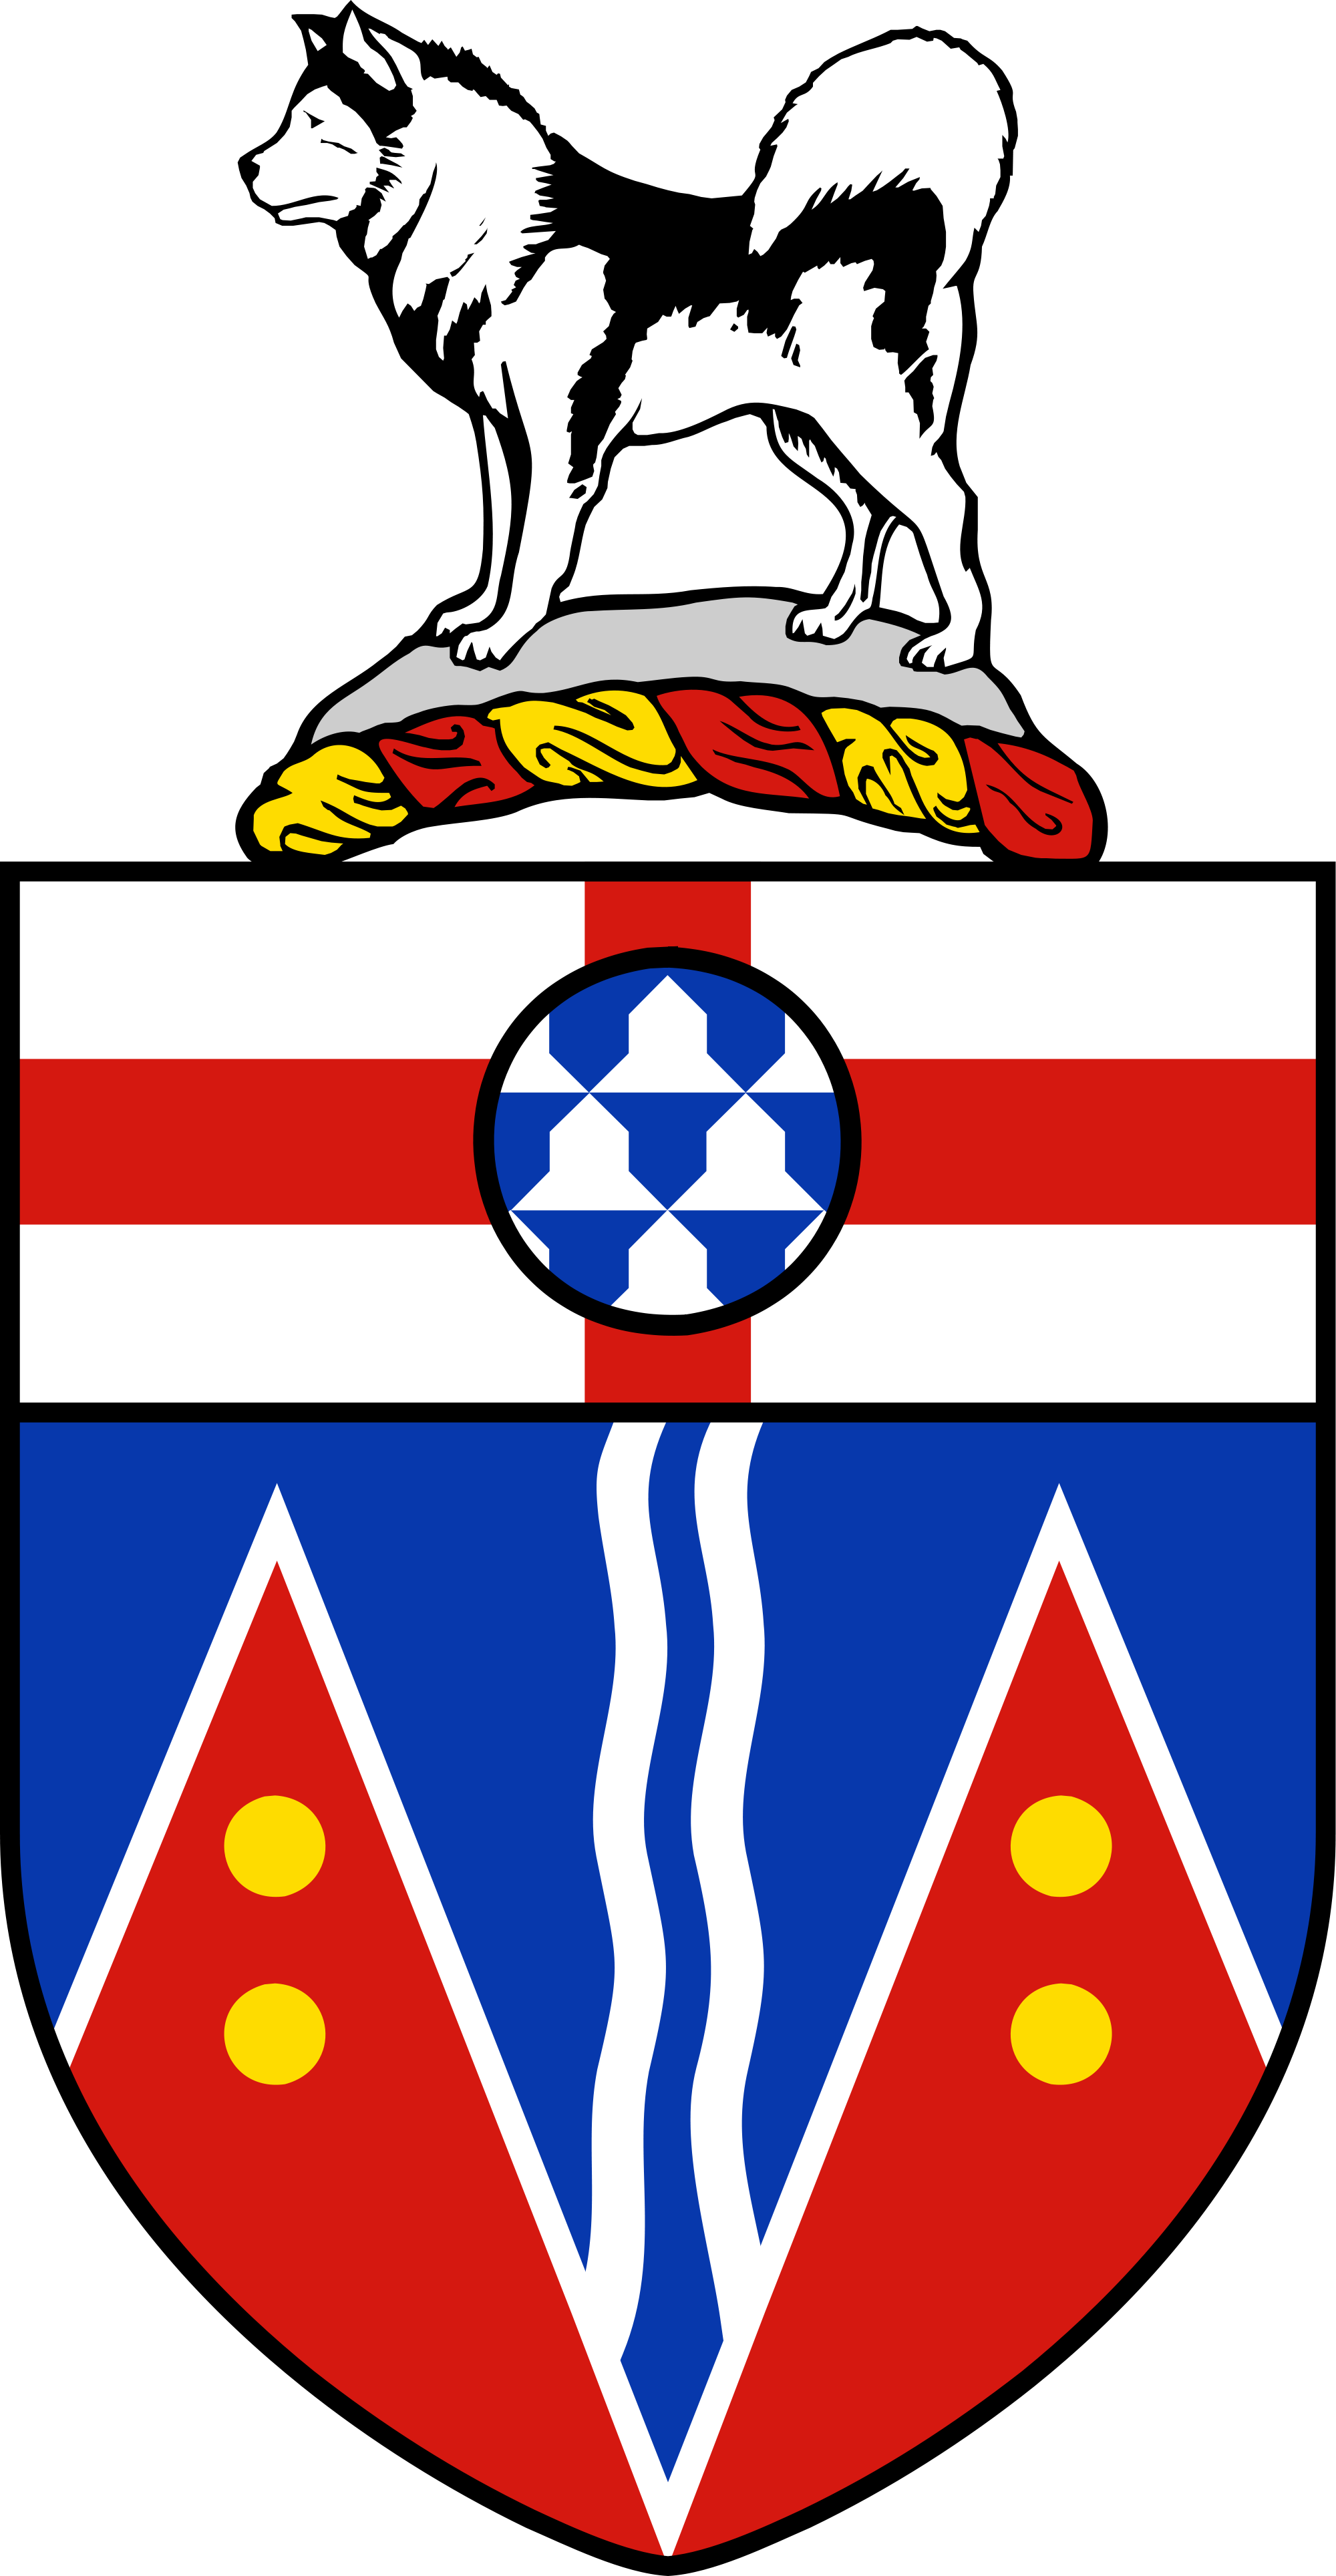 File:Coat of arms of Yukon.svg.